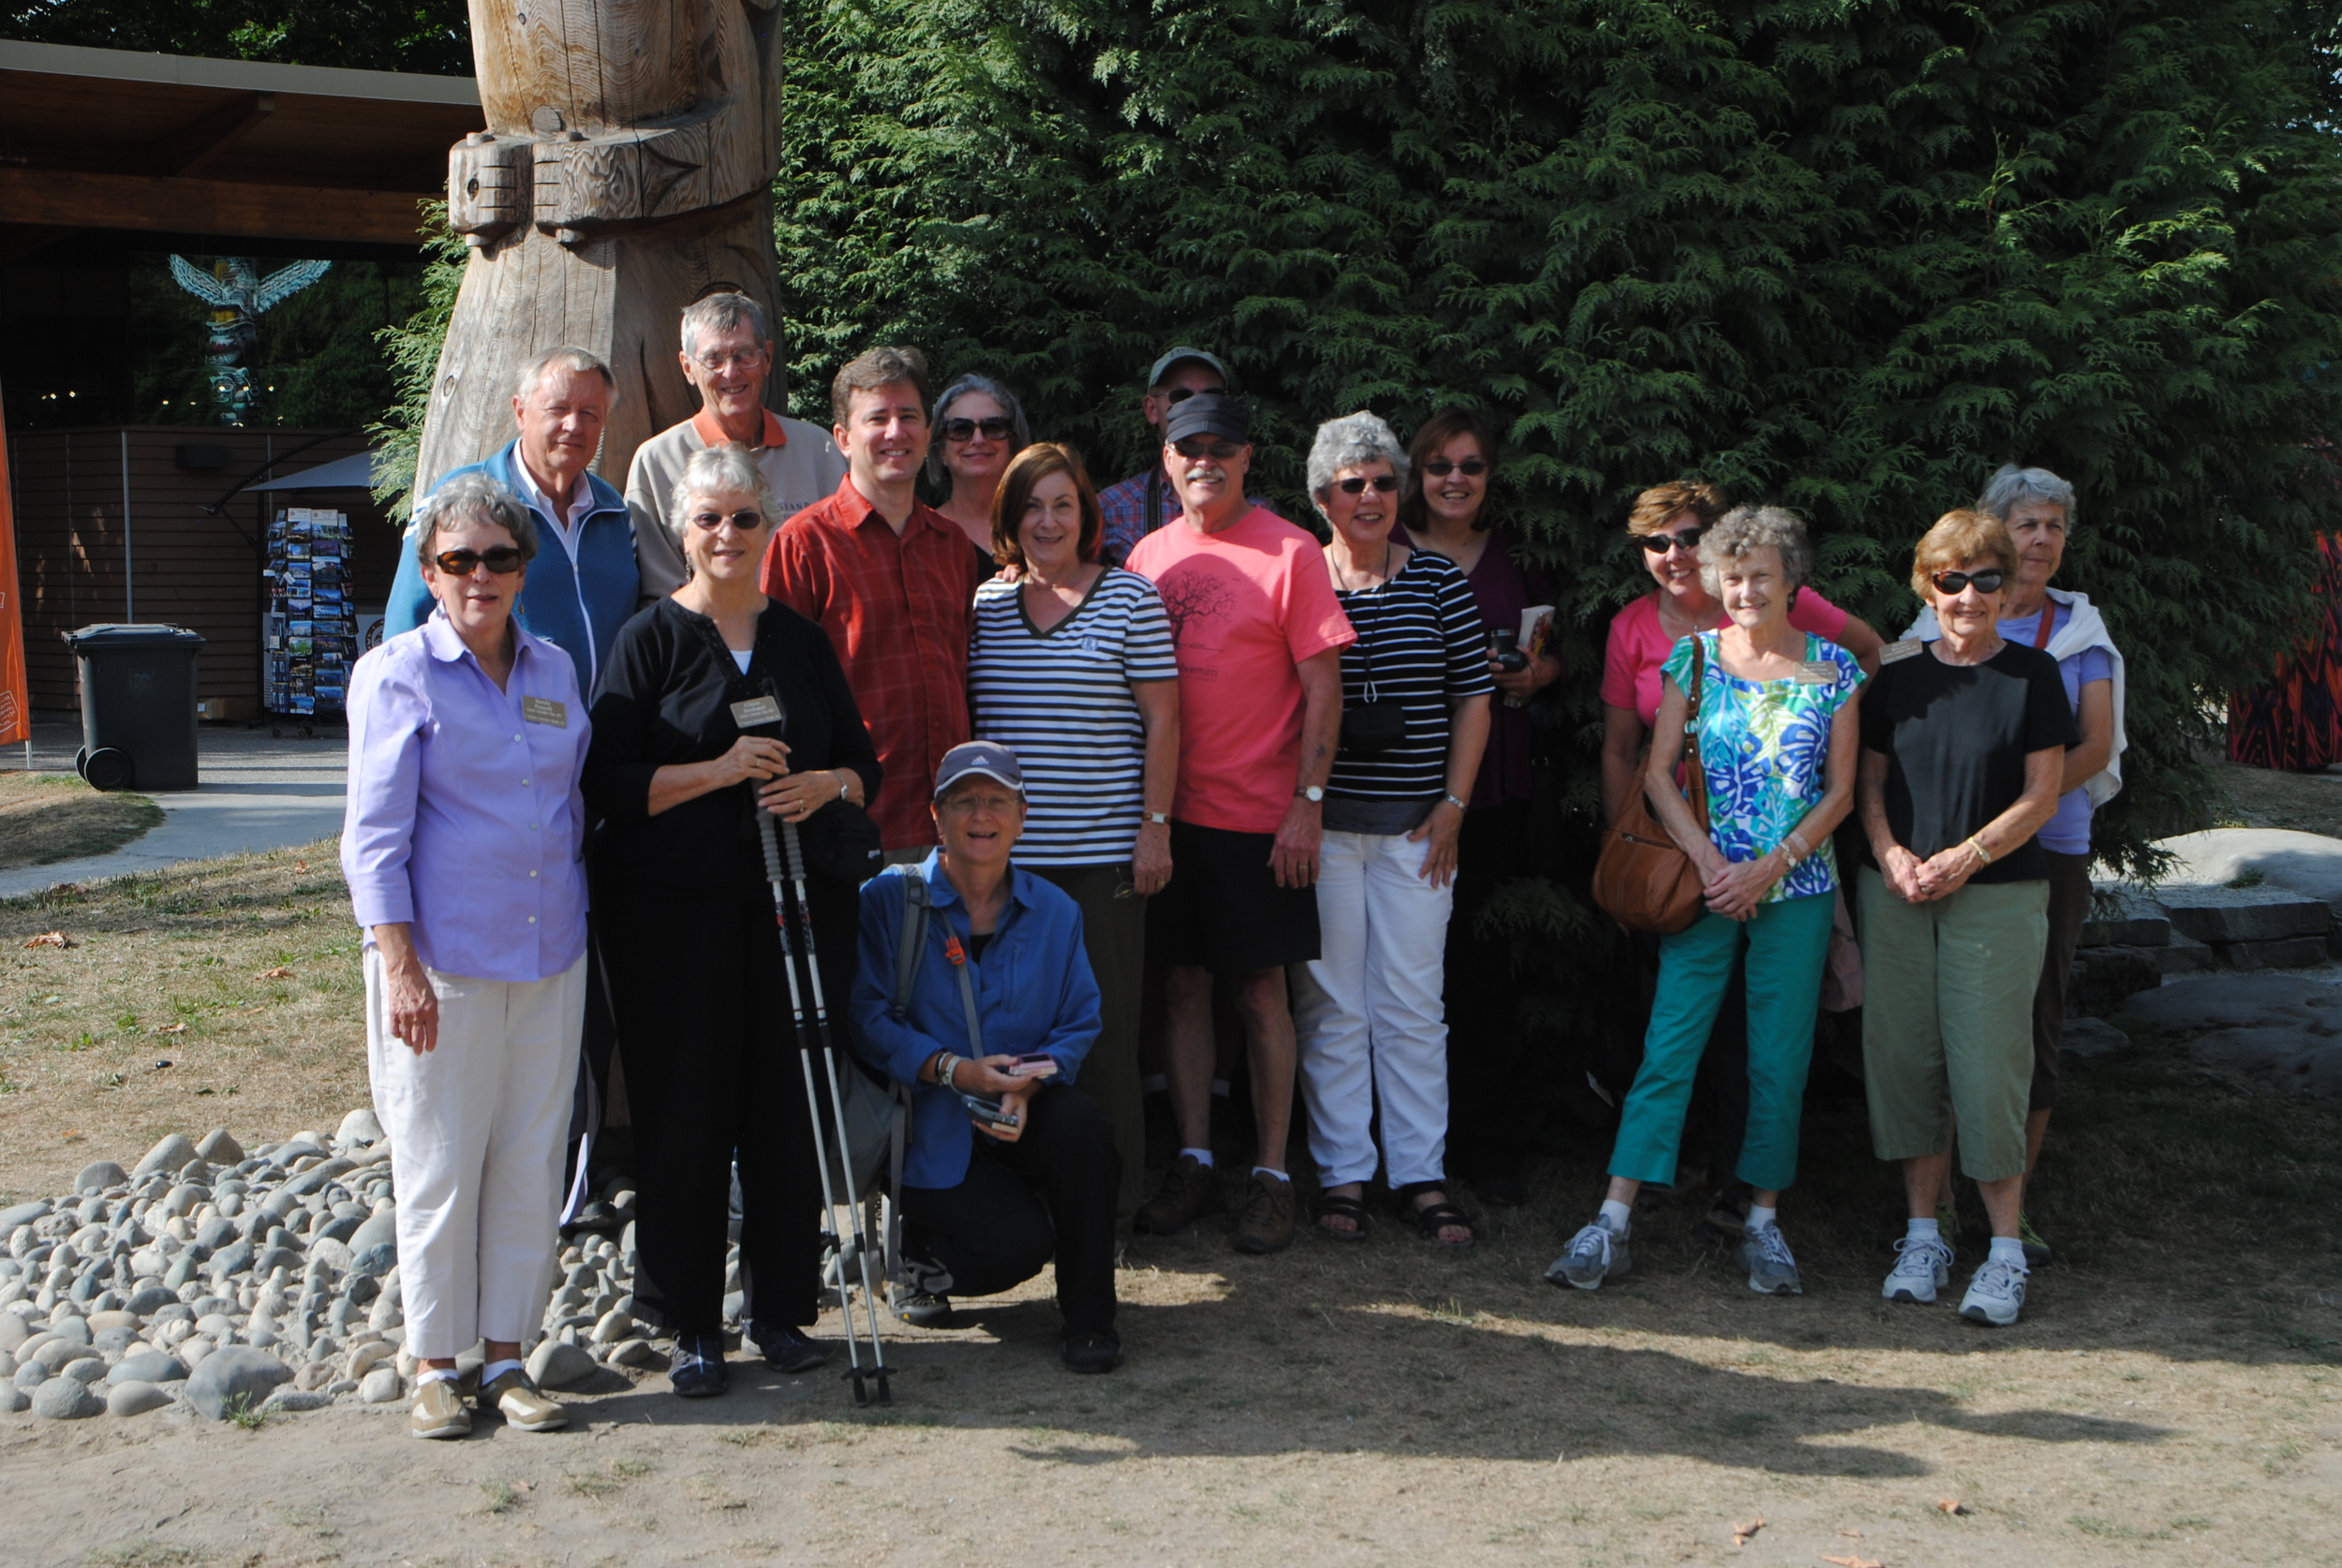 A good looking group at the First Nations totem poles.